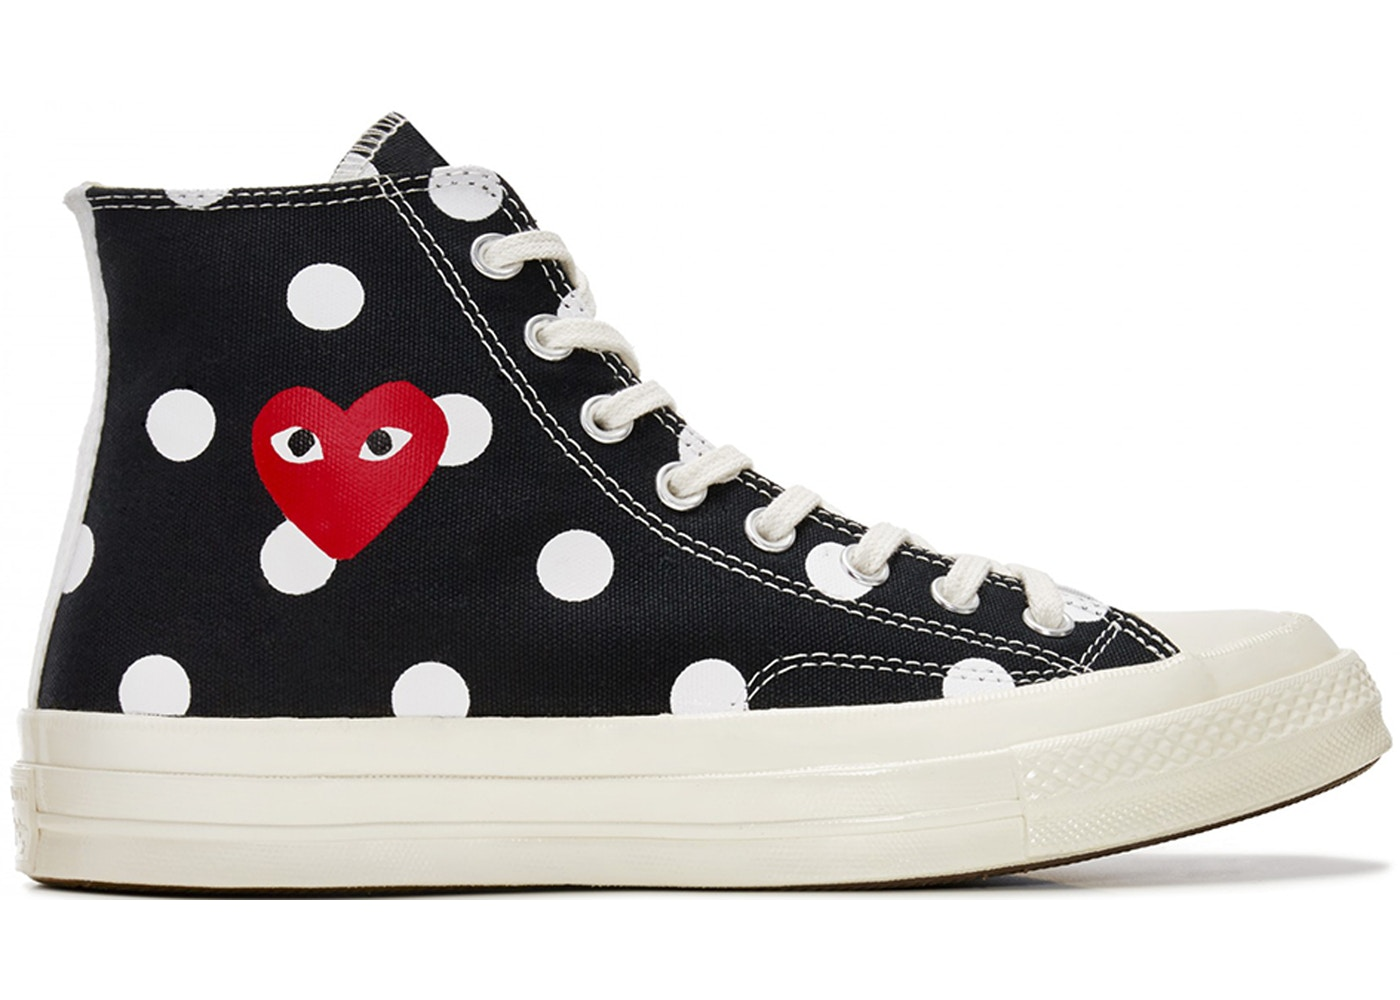 Converse Chuck Taylor All Star 70s Hi Comme des Garcons PLAY Polka Dot Black